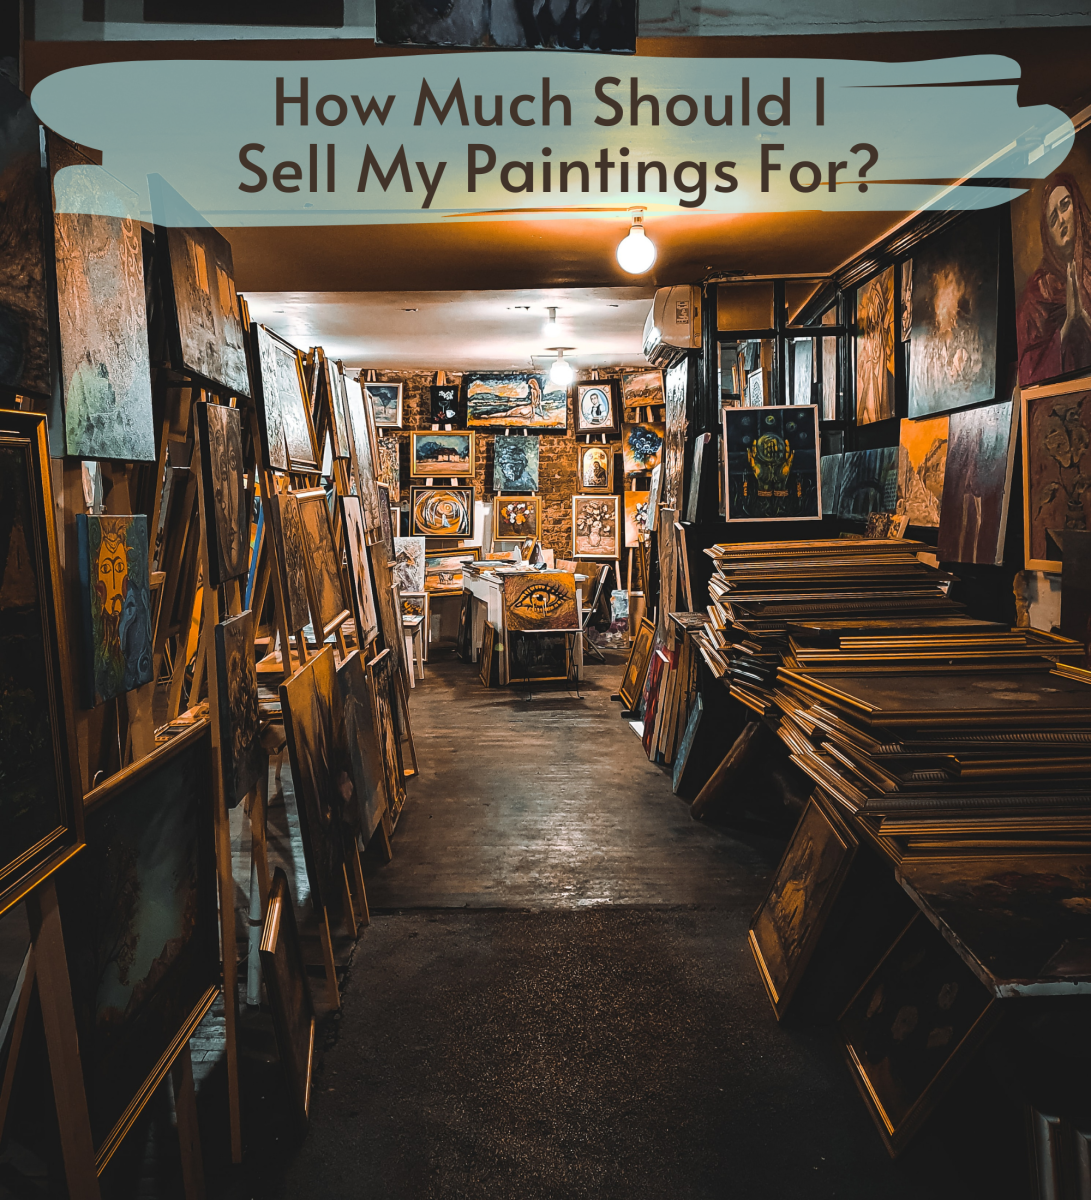 How Much Should I Charge for My Paintings?